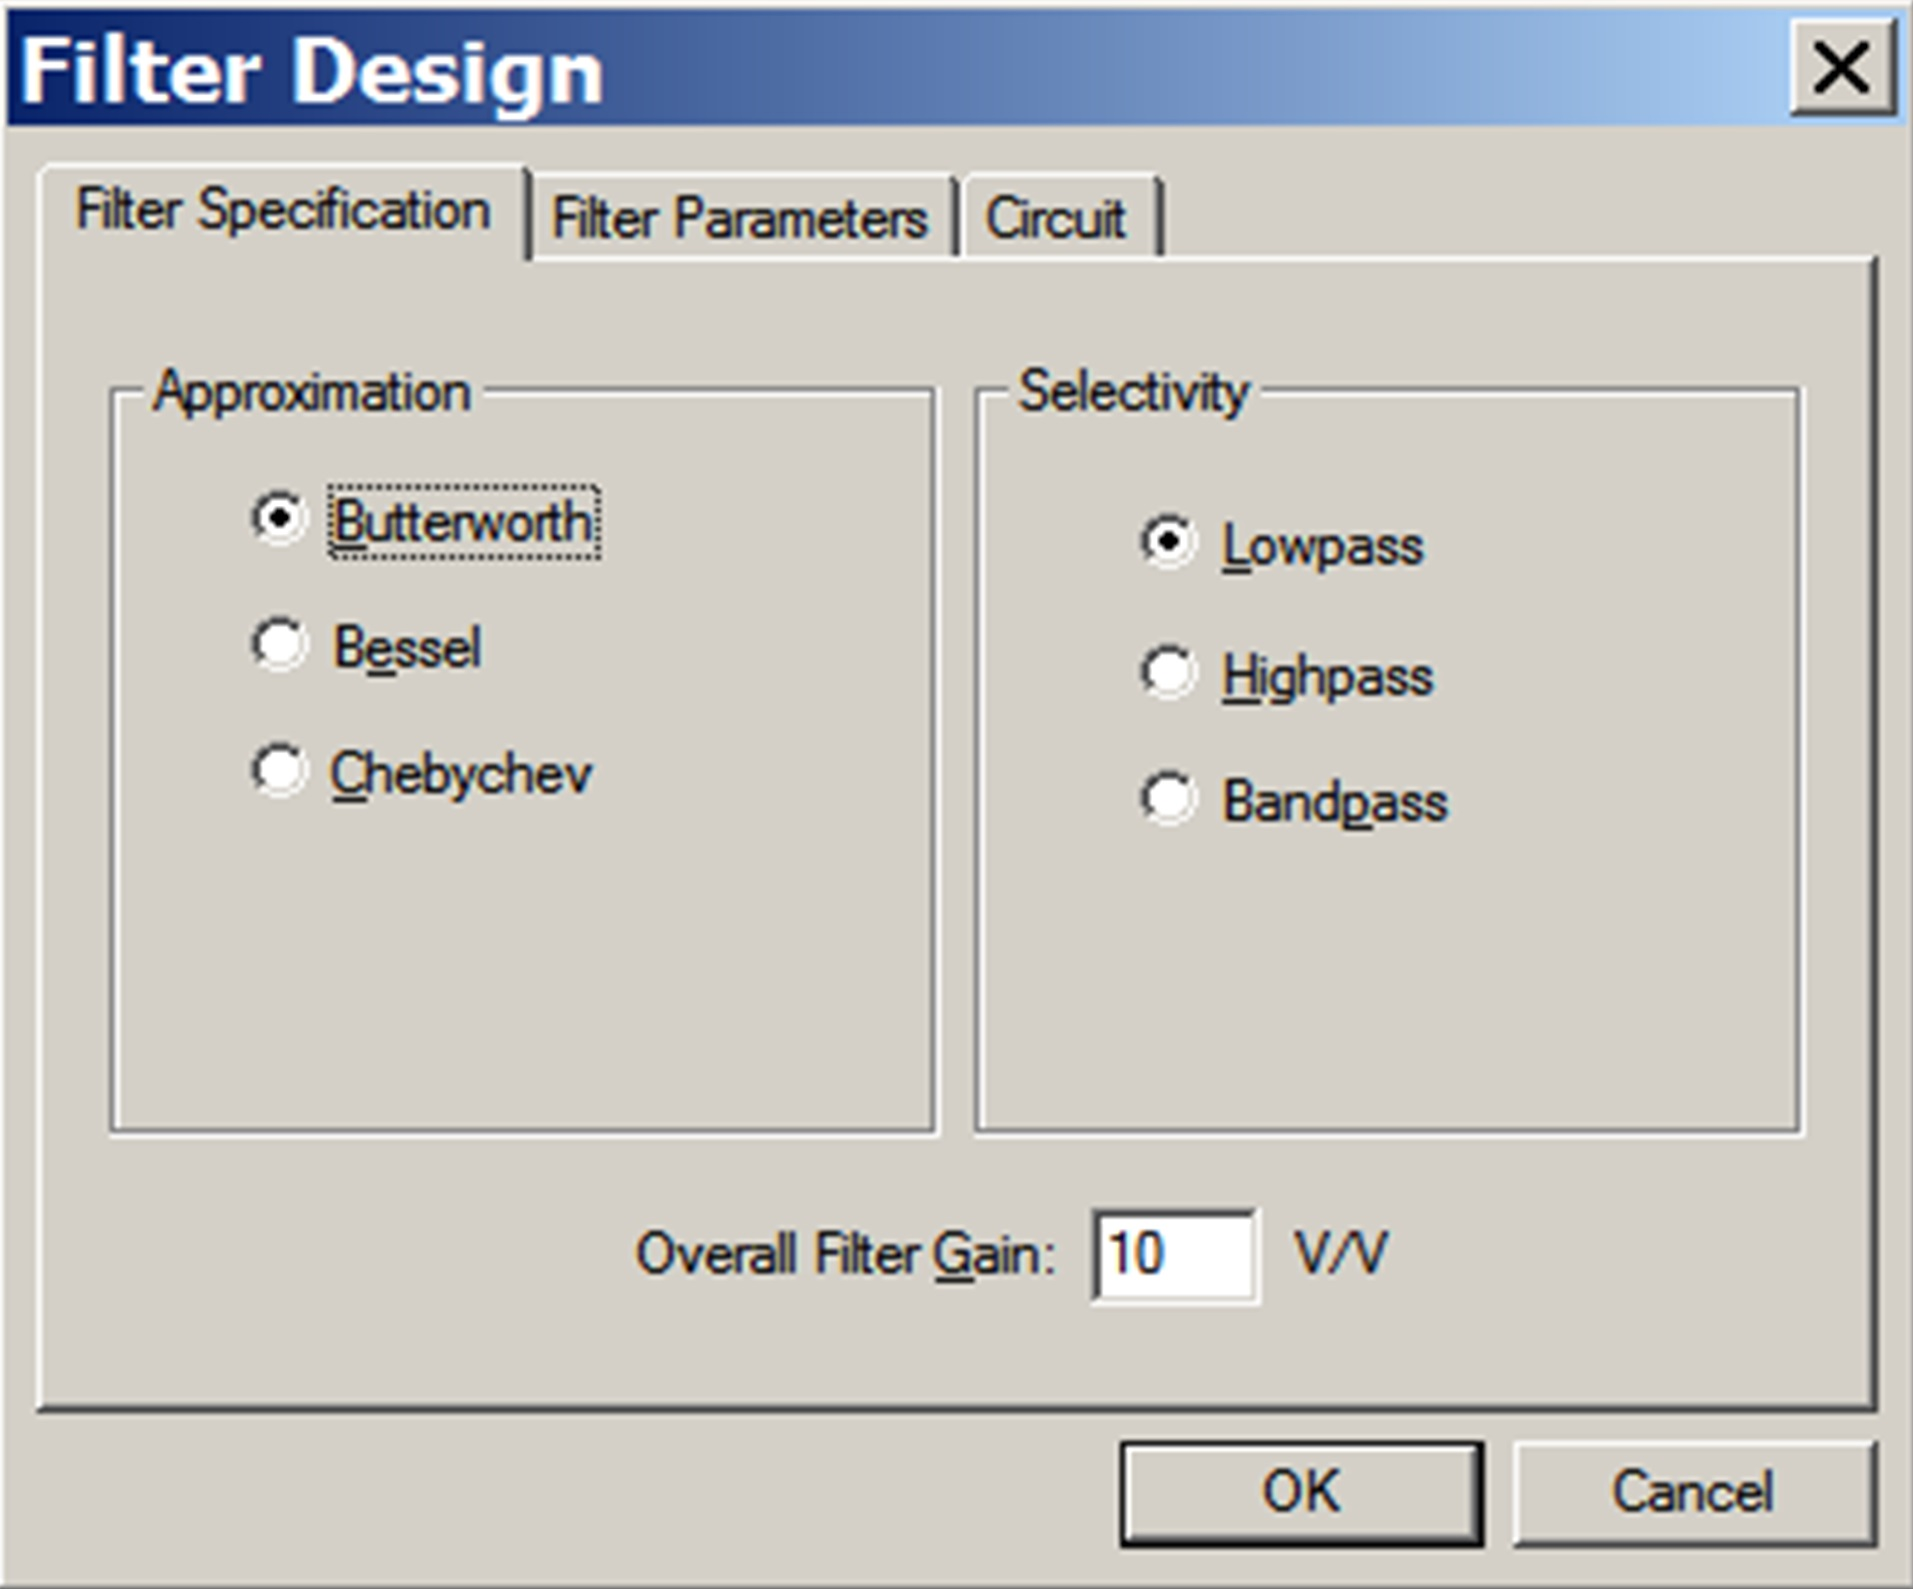 Filter Design Example Developer Help Circuits Gt Ac Power And Phone Line Homemade Circuit 2